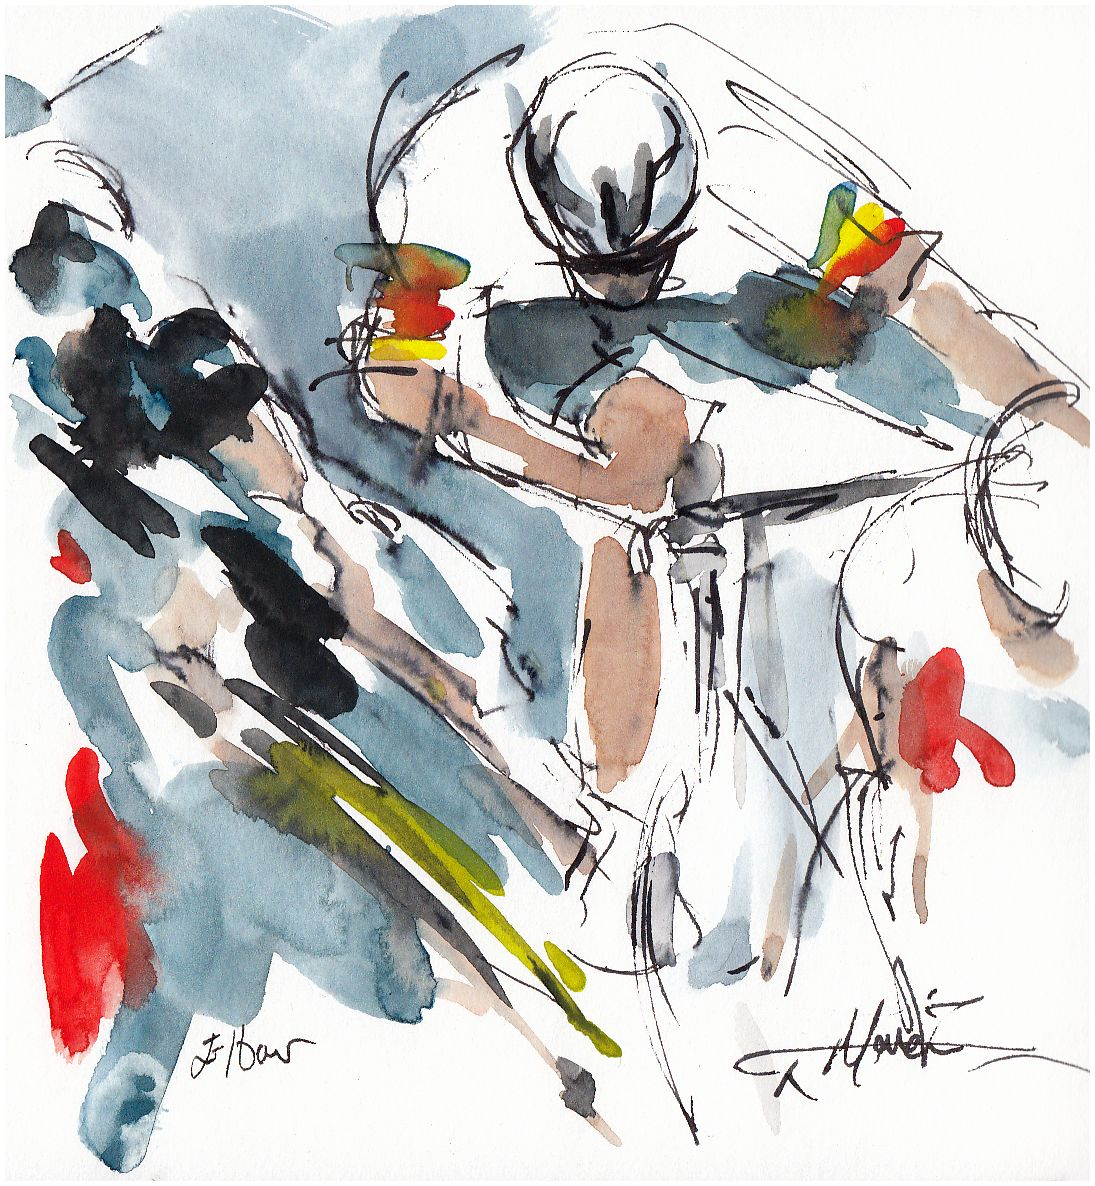 cycling, art, tour de france, cavendish, sagan